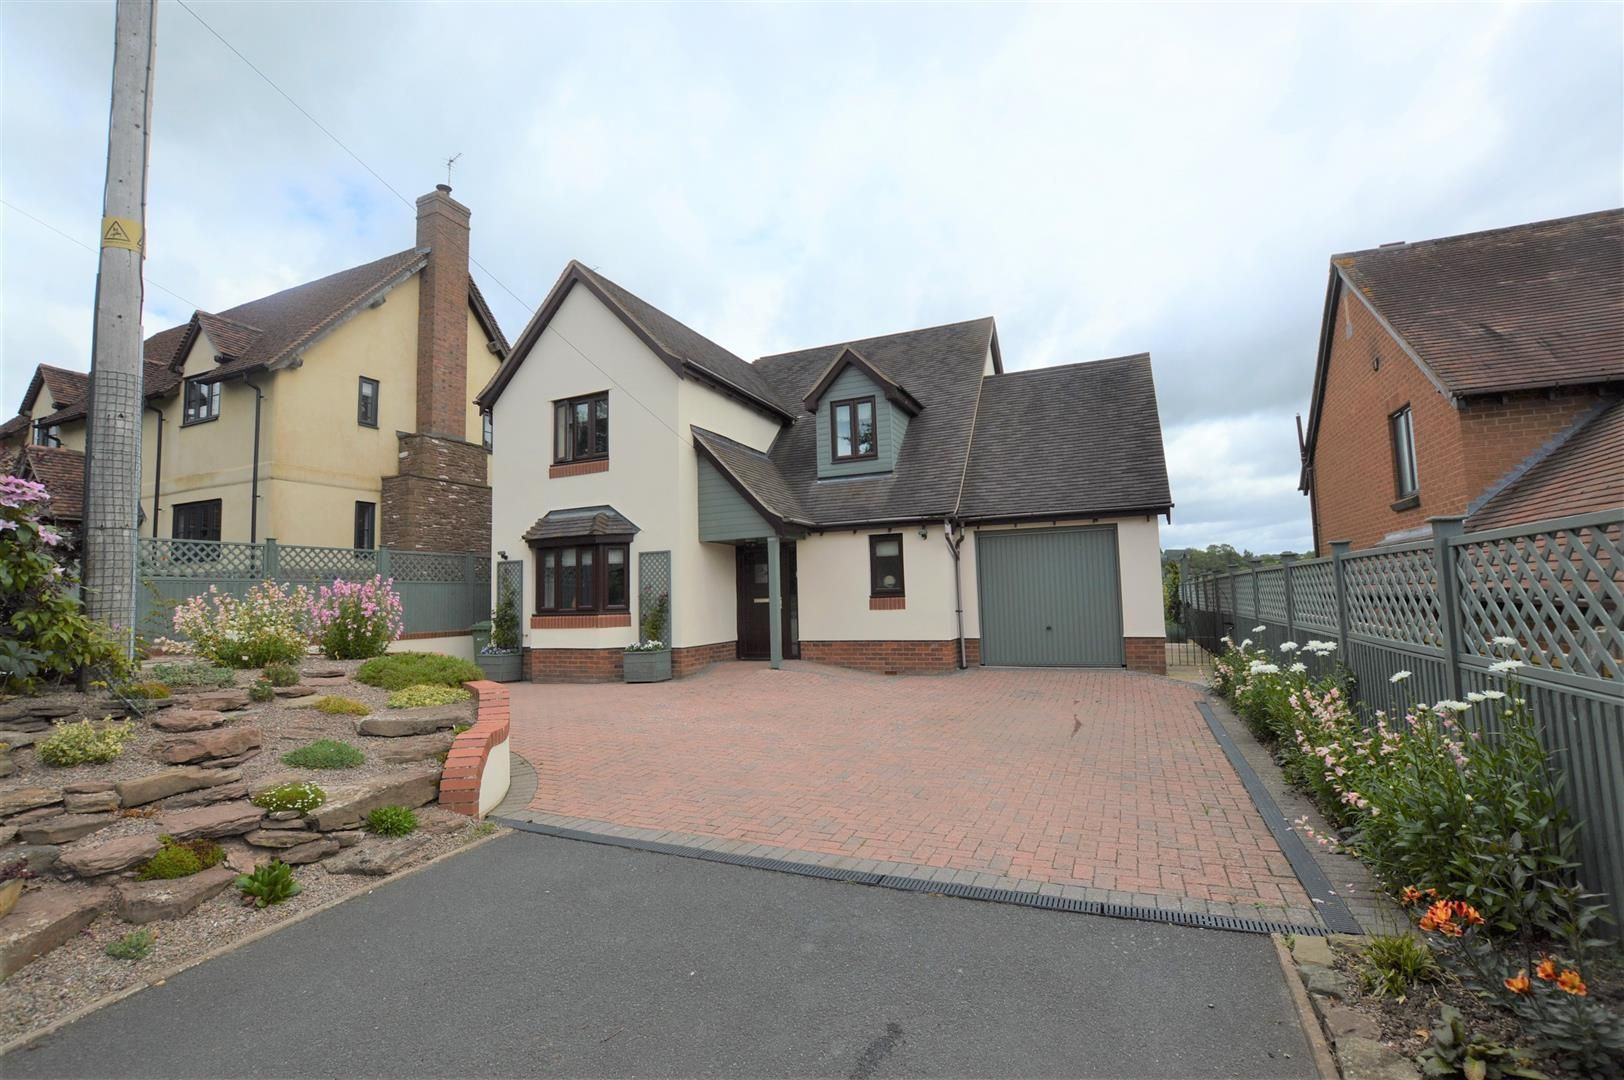 3 bed detached for sale in Kimbolton - Property Image 1